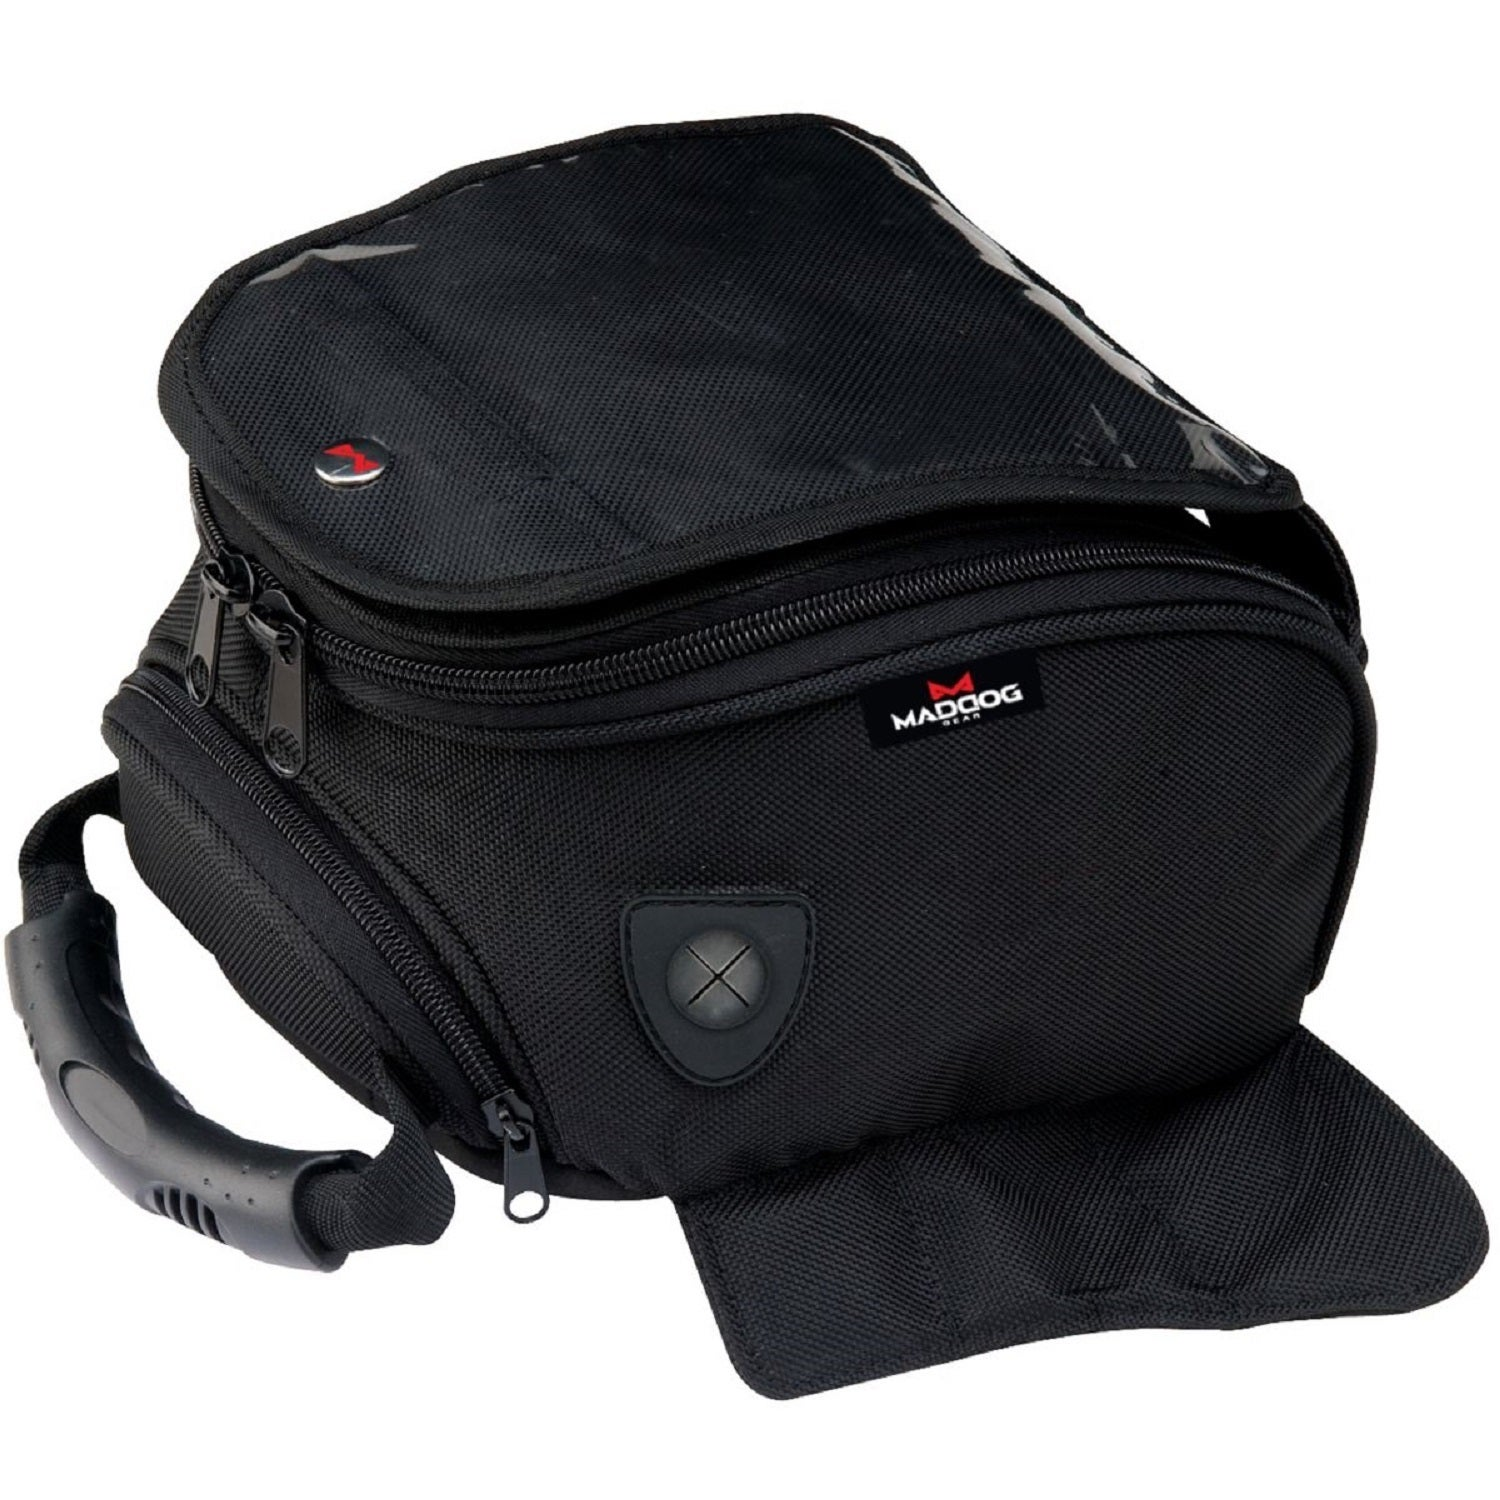 MadDog Gear Motorcycle Magnetic Tank Bag (Black)